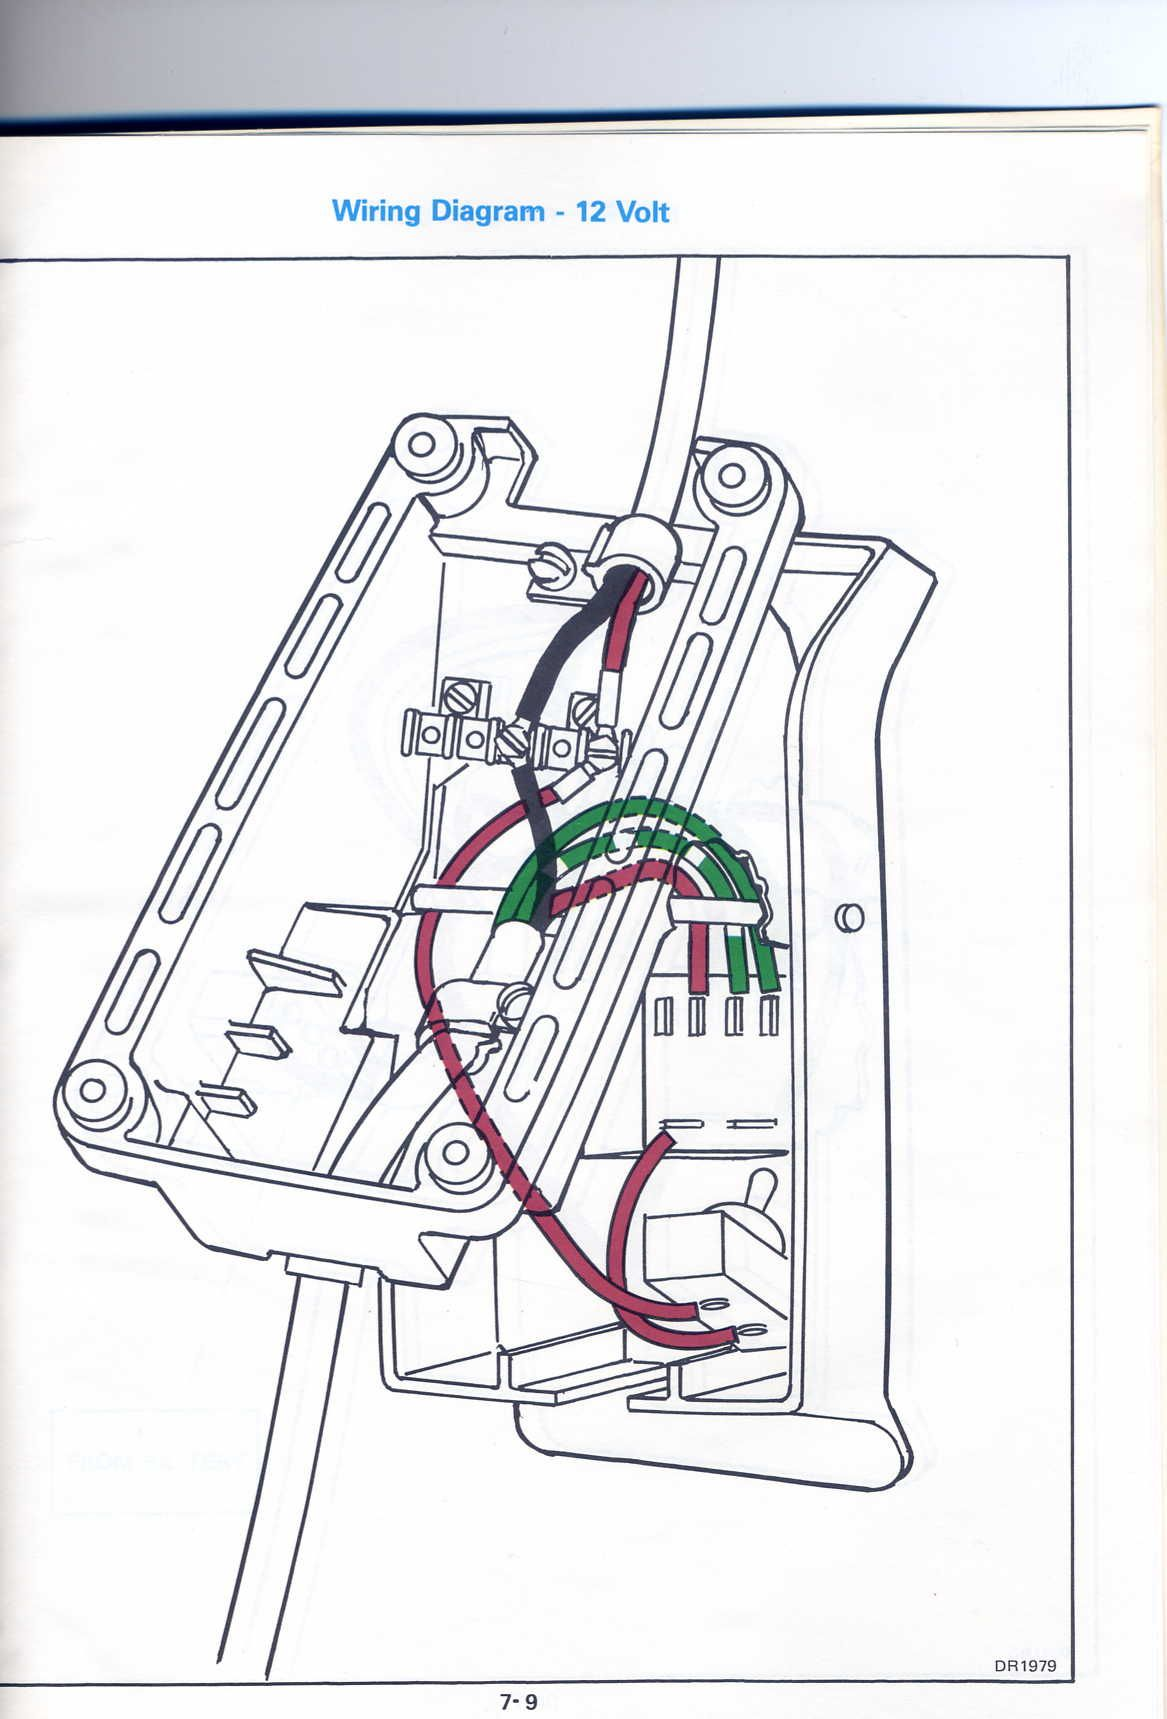 [SCHEMATICS_48YU]  765 Motorguide Wiring Diagram - 1988 Acura Legend Fuse Box for Wiring  Diagram Schematics | 12 24 Trolling Motor Wiring Diagram Free Download |  | Wiring Diagram Schematics